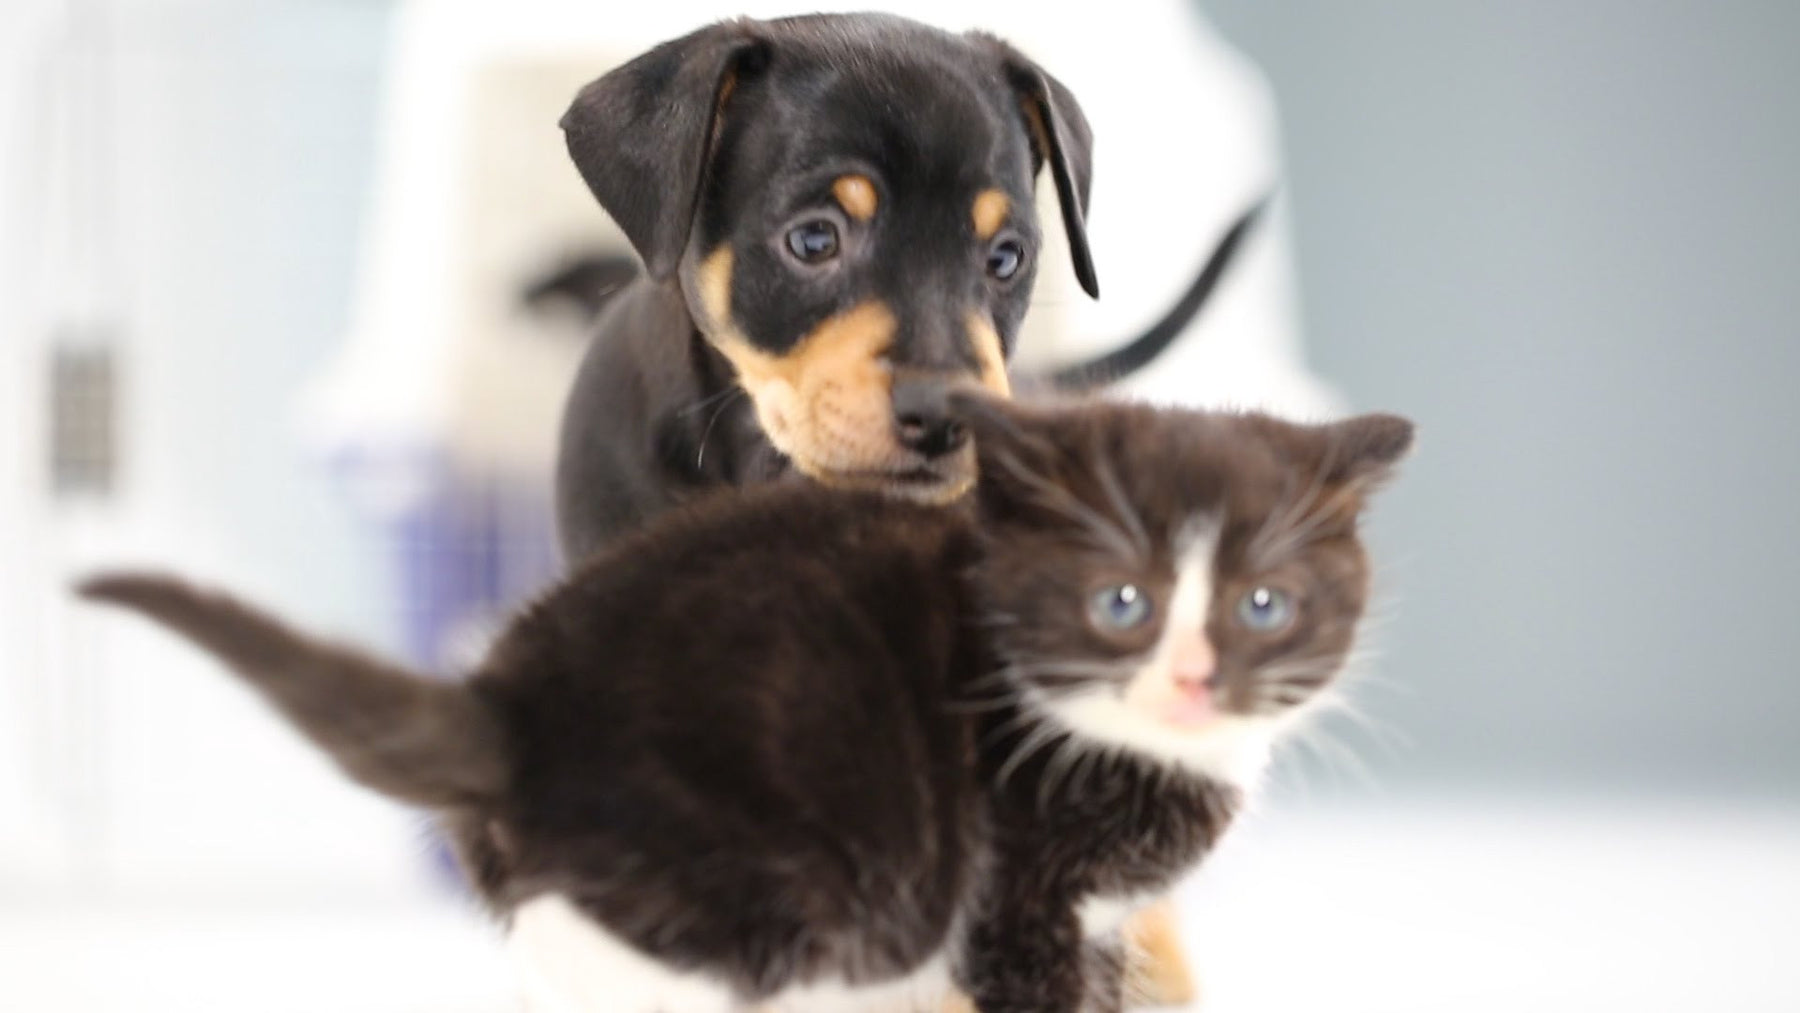 Adorable Video Shows What Happens When Kittens and Puppies Meet for the First Time